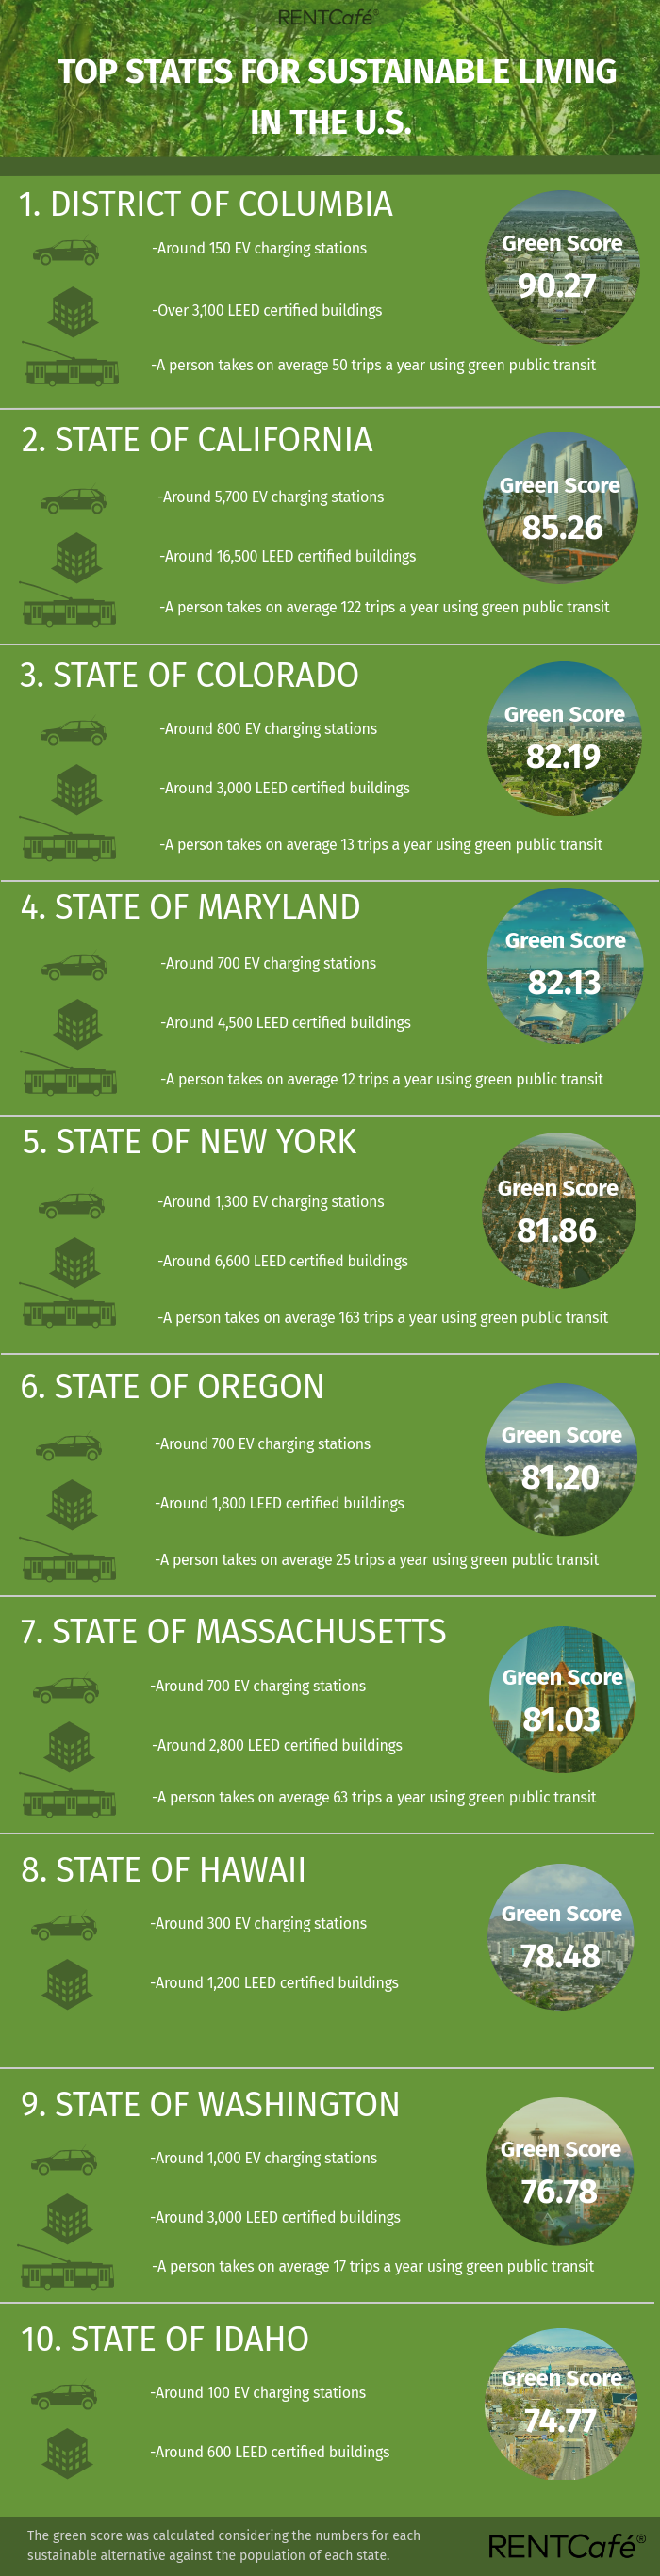 Rentcafe Top States for Green Alternatives to Living, Working, and Commuting